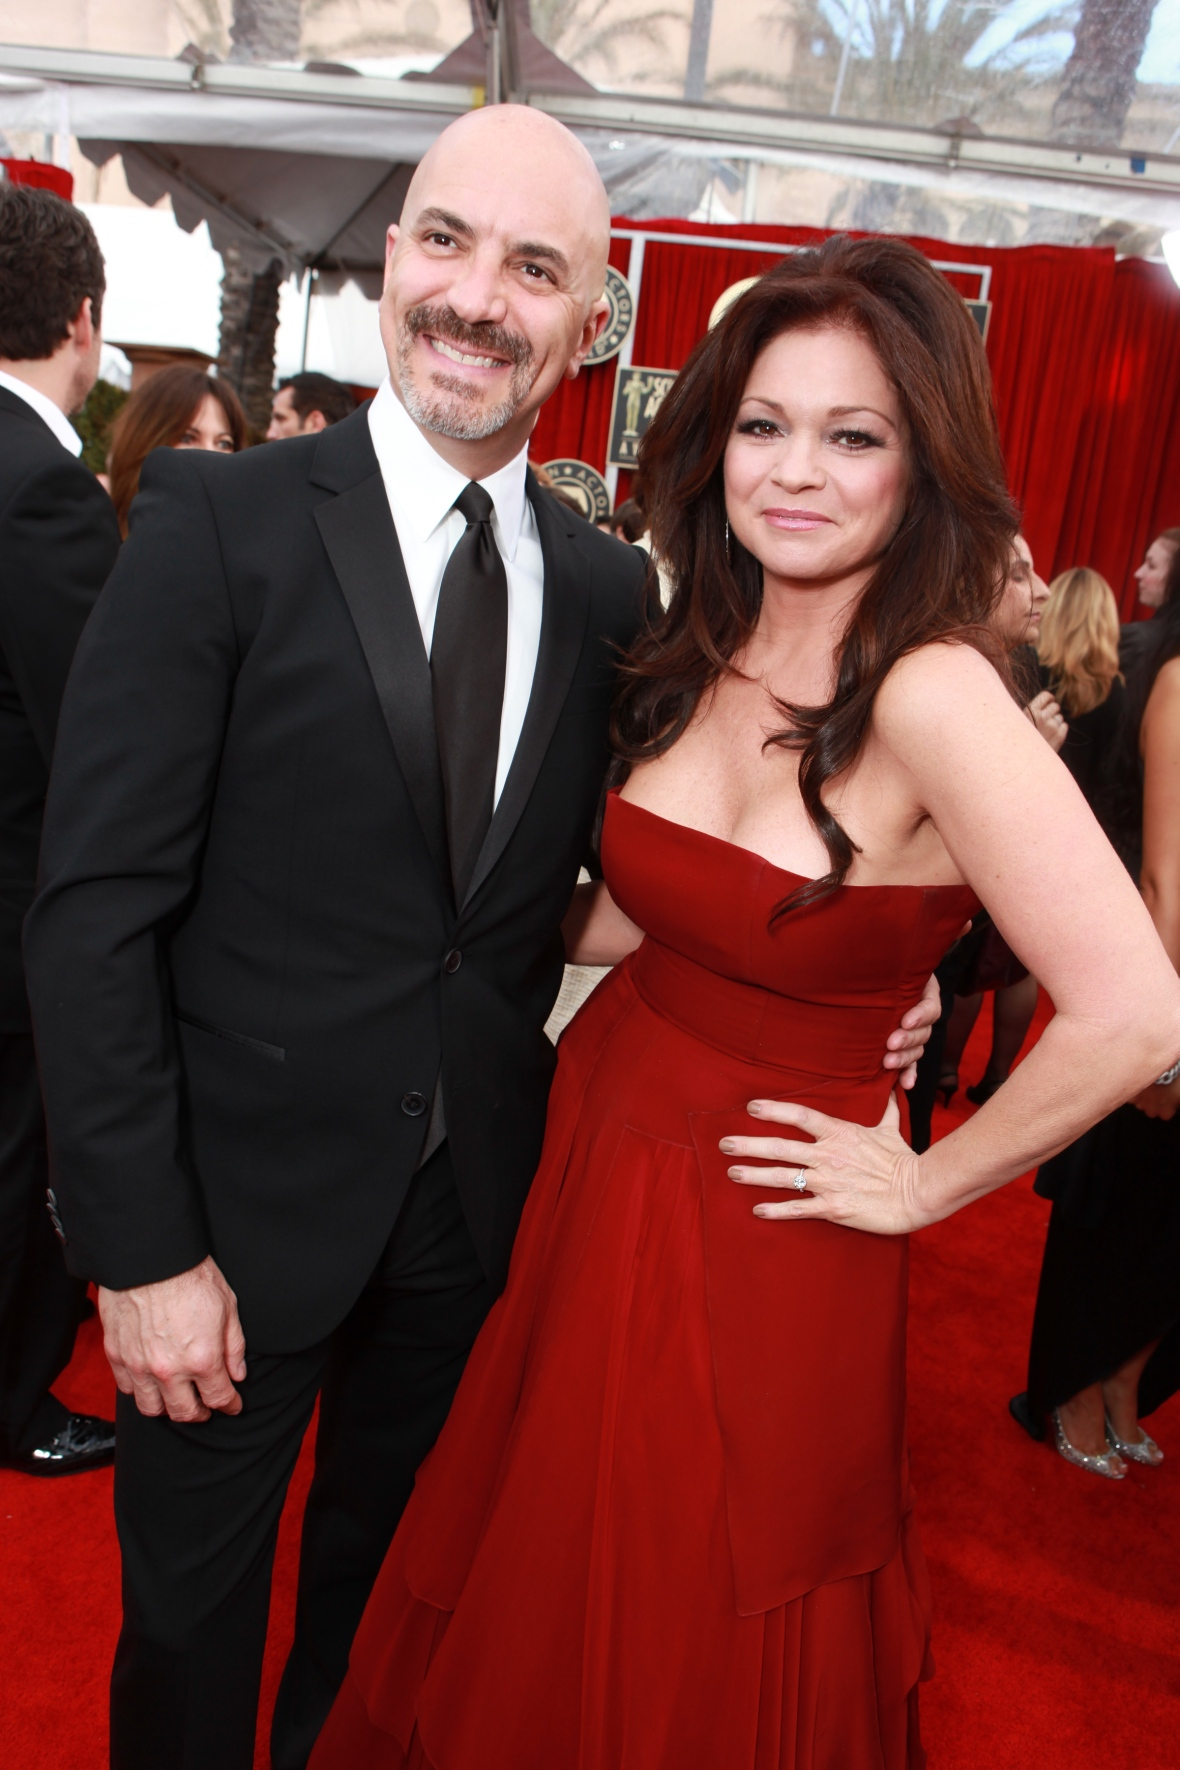 Tom Vitale and Wife Valerie Bertinelli